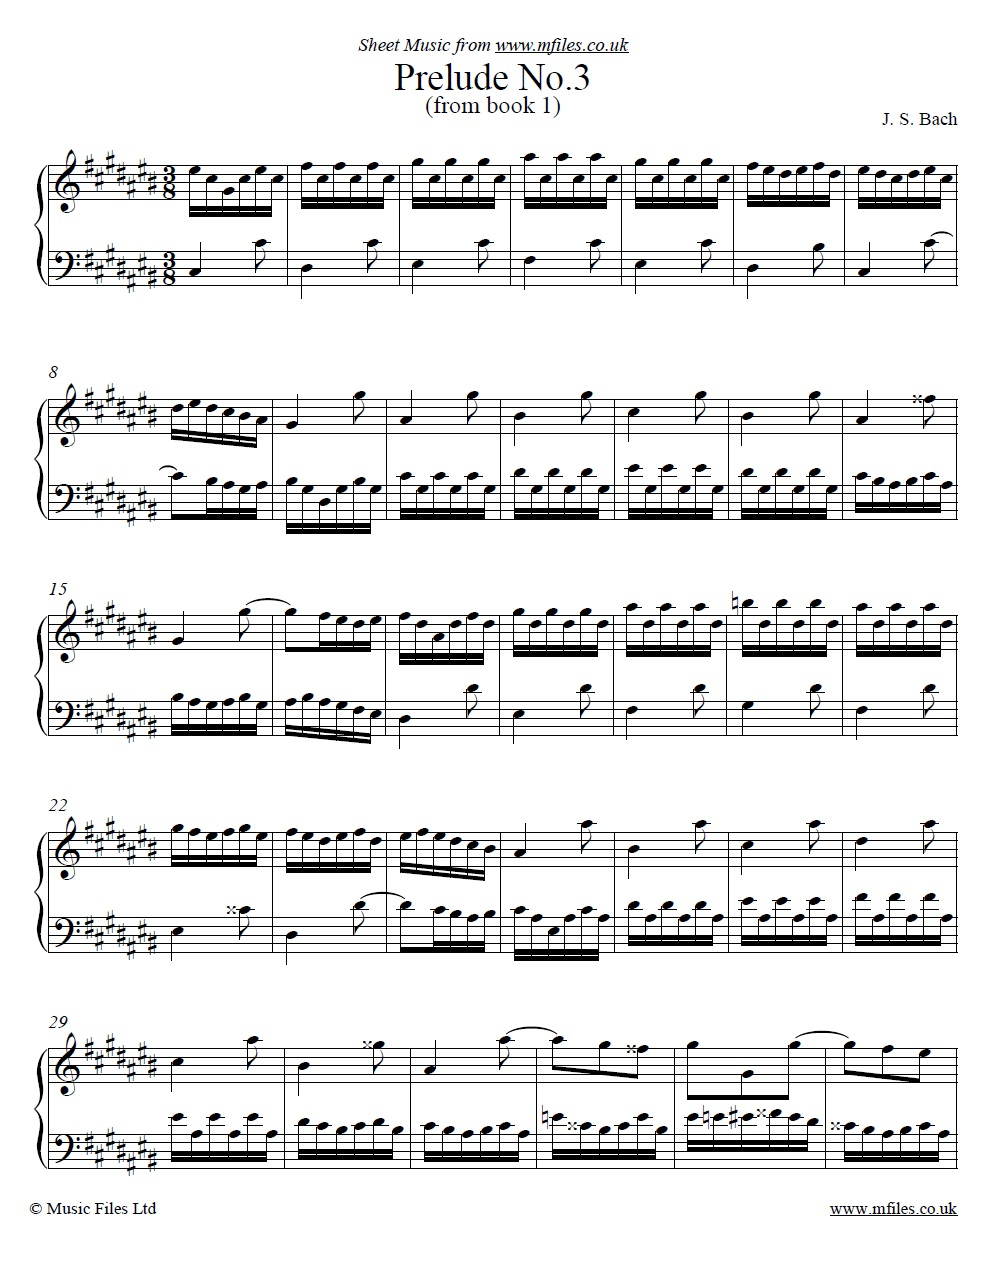 Bach's Prelude No.3 from book 1 of the WTC - sheet music 1st page